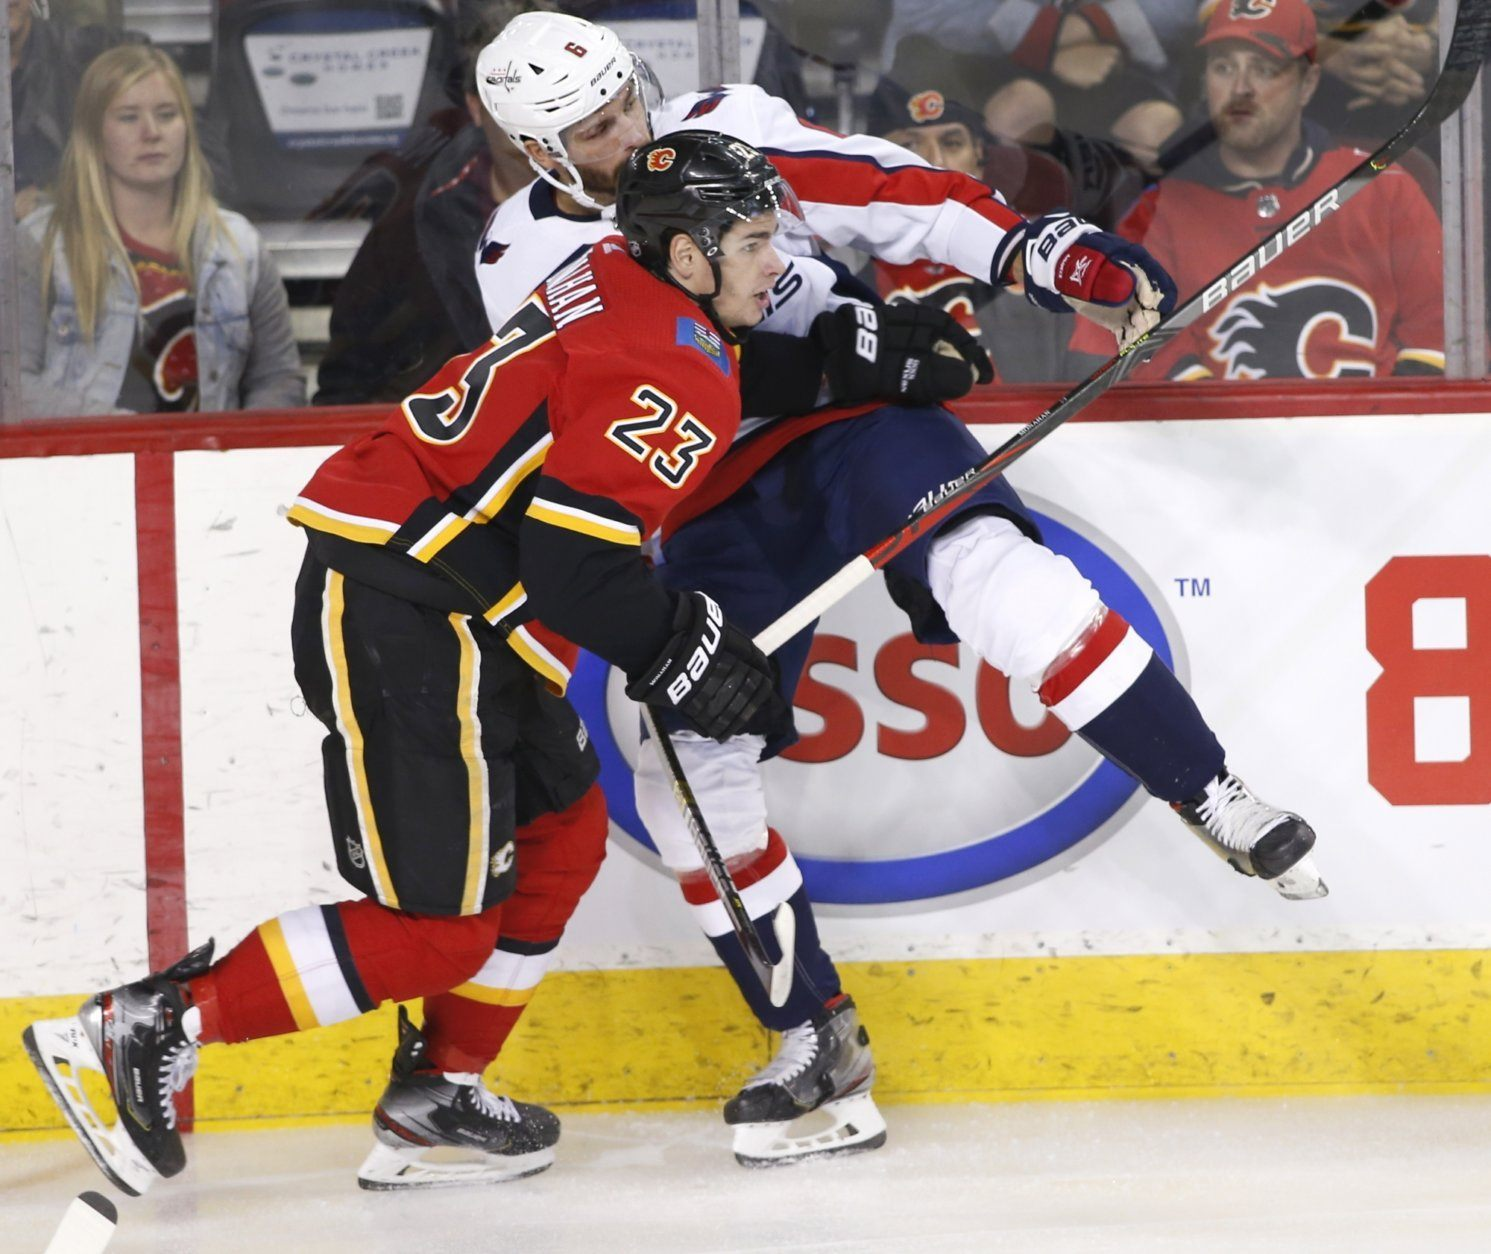 Washington Capitals' Michal Kempny, rear, from the Czech Republic, takes a hit from Calgary Flames' Sean Monahan during the first period of an NHL hockey game Tuesday, Oct. 22, 2019, in Calgary, Alberta. (Larry MacDougal/The Canadian Press via AP)